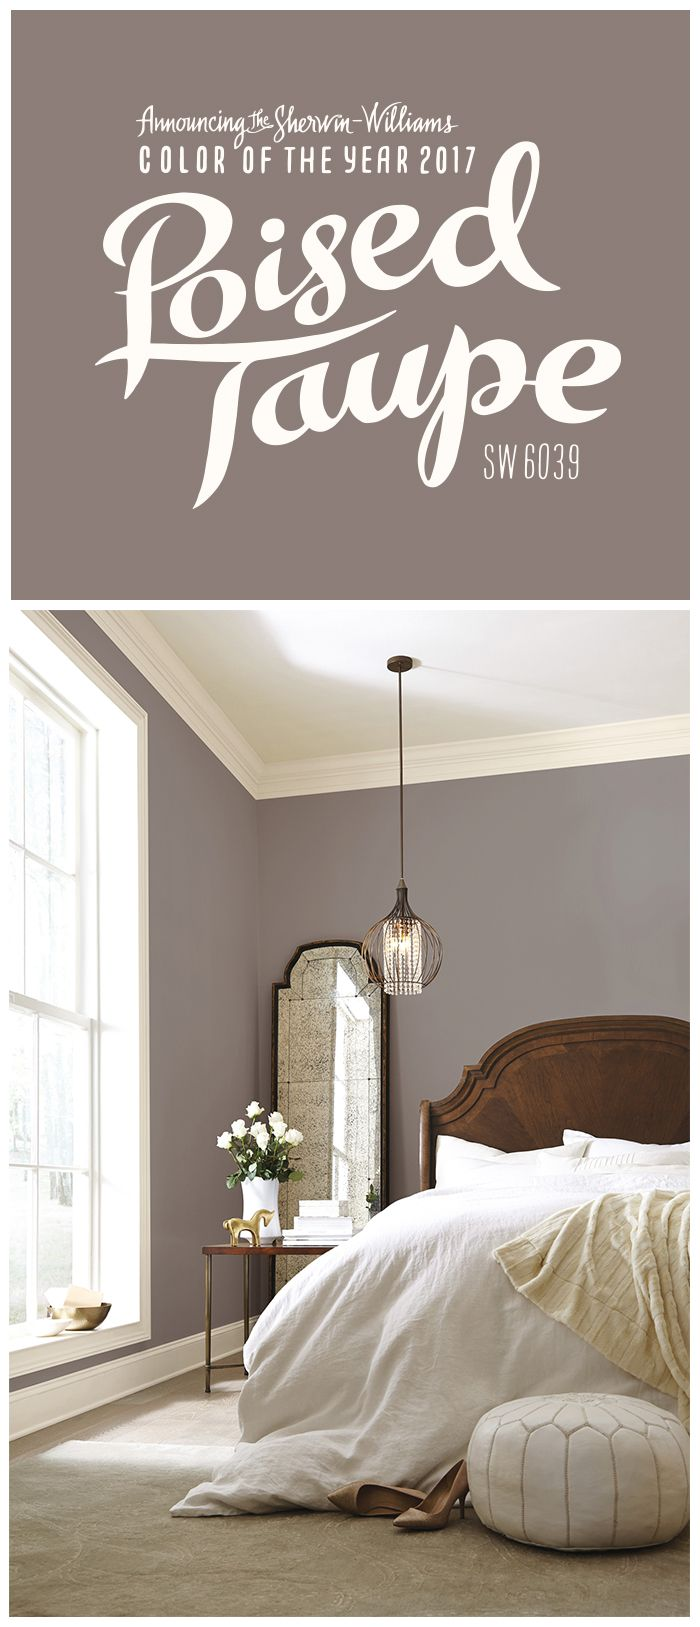 Room Colors Bedroom Were Thrilled About Our 2017 Color Of The Year Poised Taupe Sw